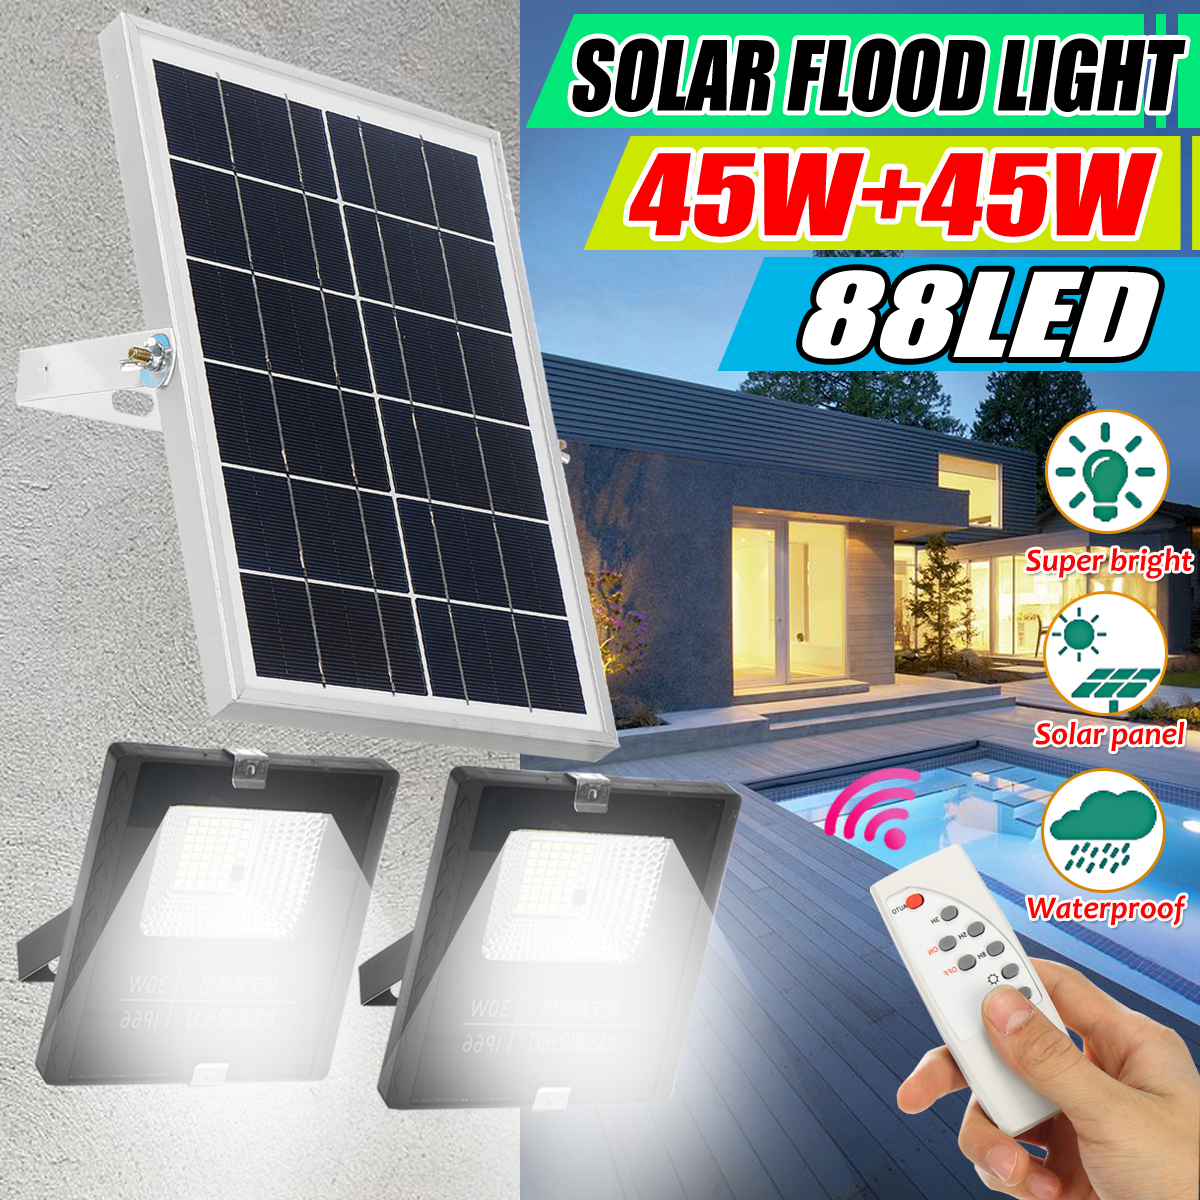 45w+45w Solar Floodlight Led Portable Spotlight Floodlight Outdoor Street Garden Light Waterproof Wall Lamp With Remote Control